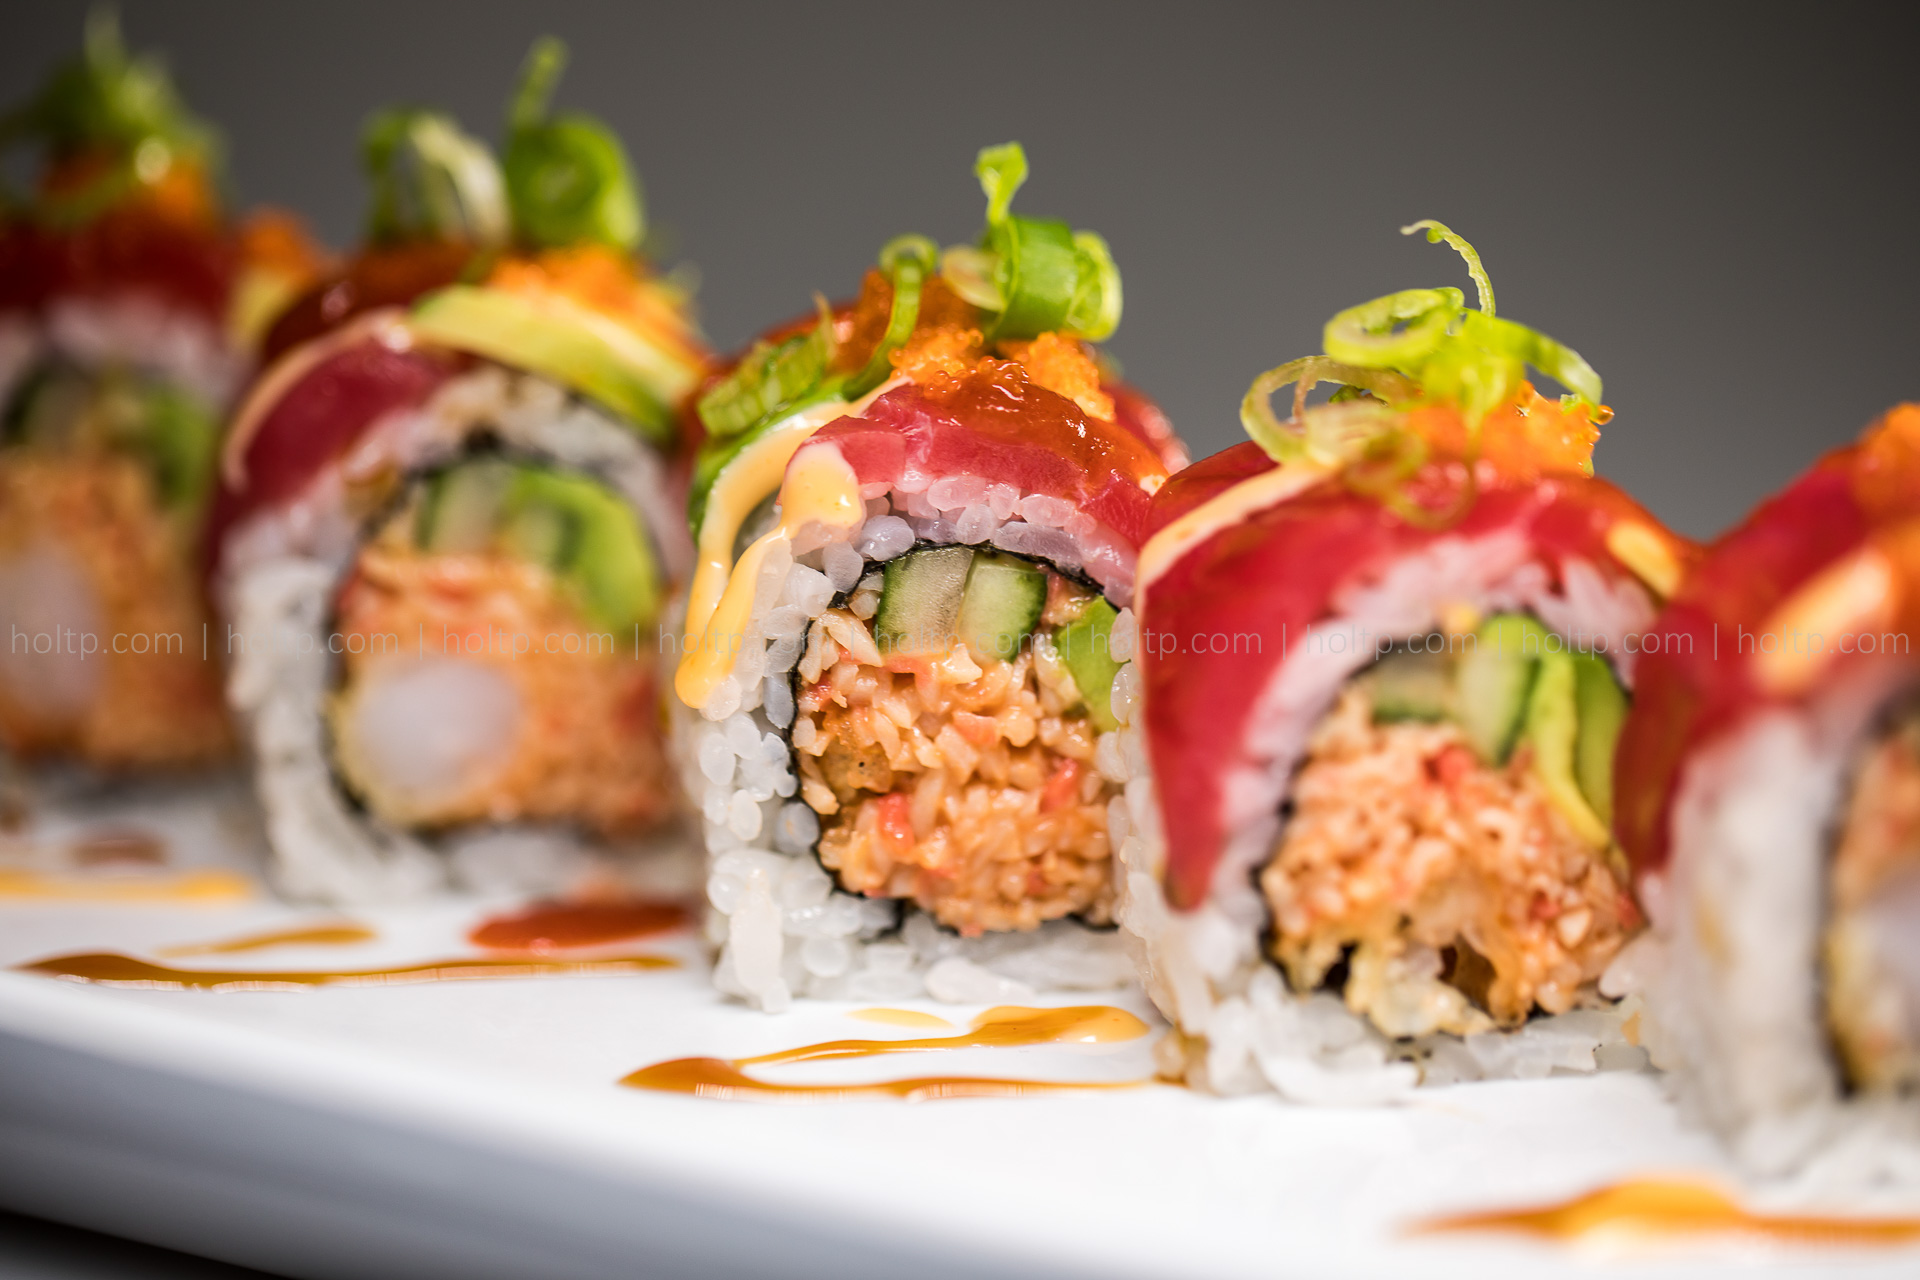 Sushi Rolls | Restaurant Food Photography